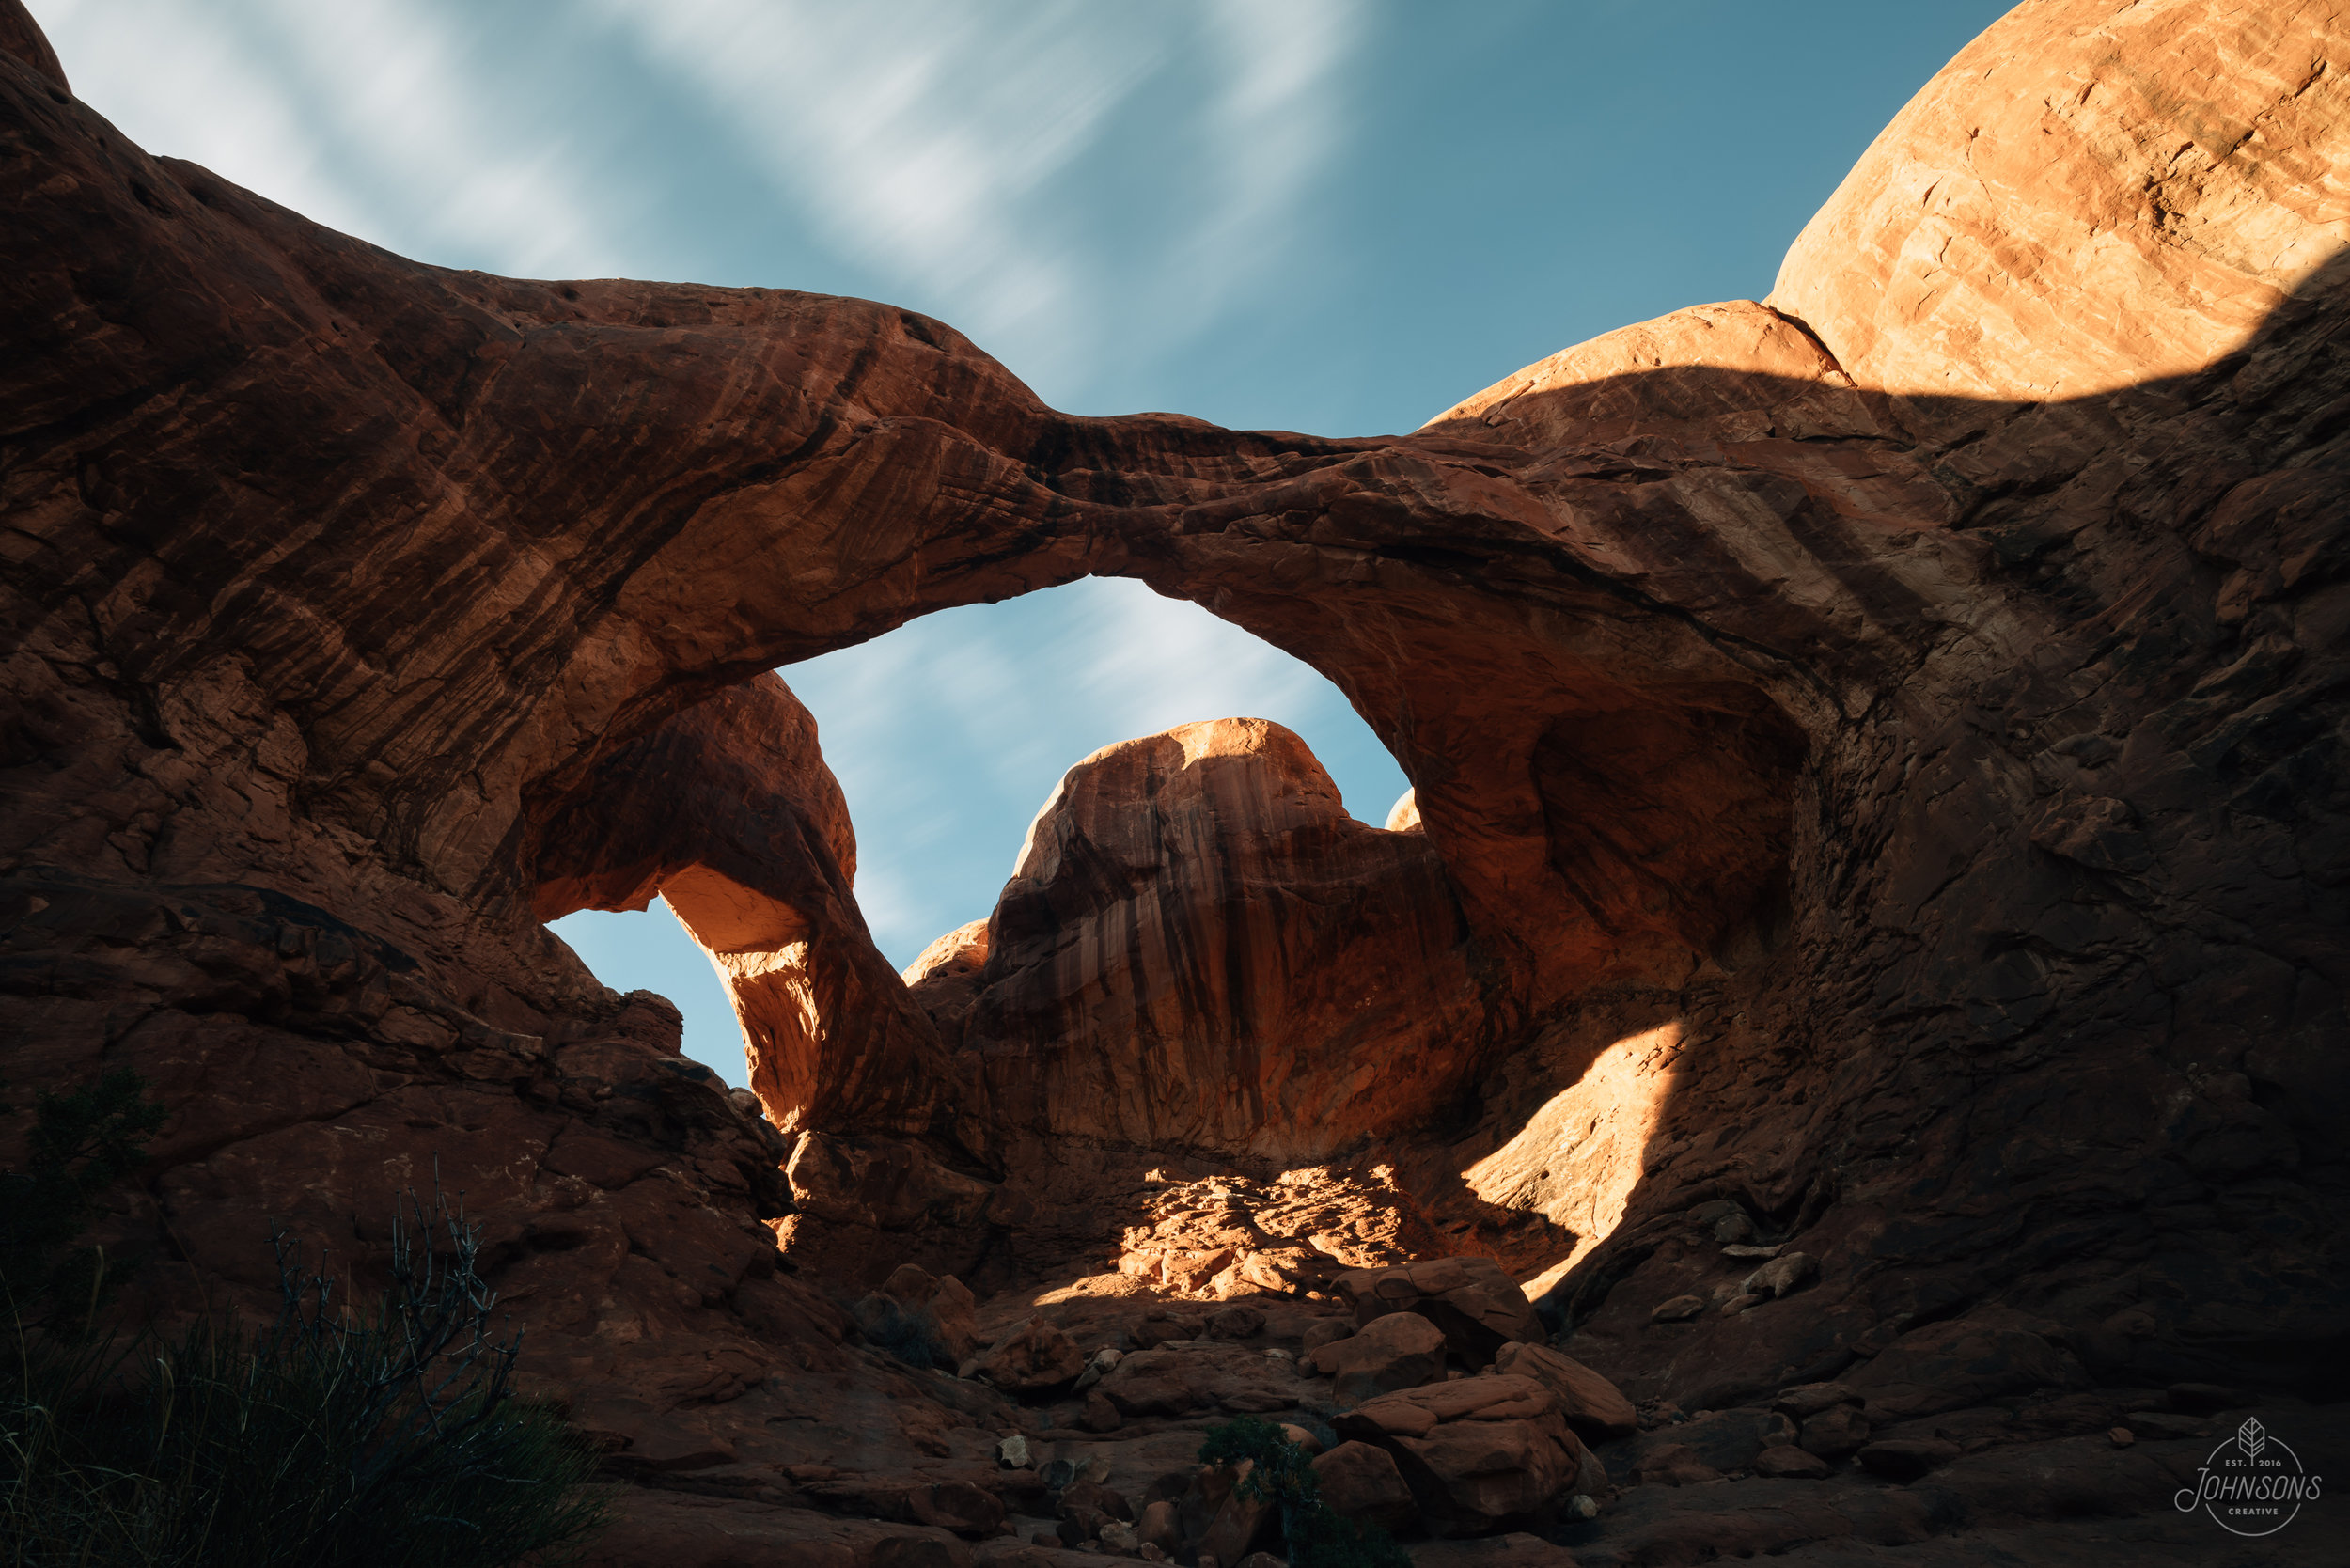 Sony a7rii |15mm 4.5 |f10 | .5 sec |ISO 50 | Smooth Reflection Sony App    Double Arch. One of the well known arches (pretty much all that we saw were), only a 5 minute walk from the parking lot. It would be a cool location for astrophotographers.